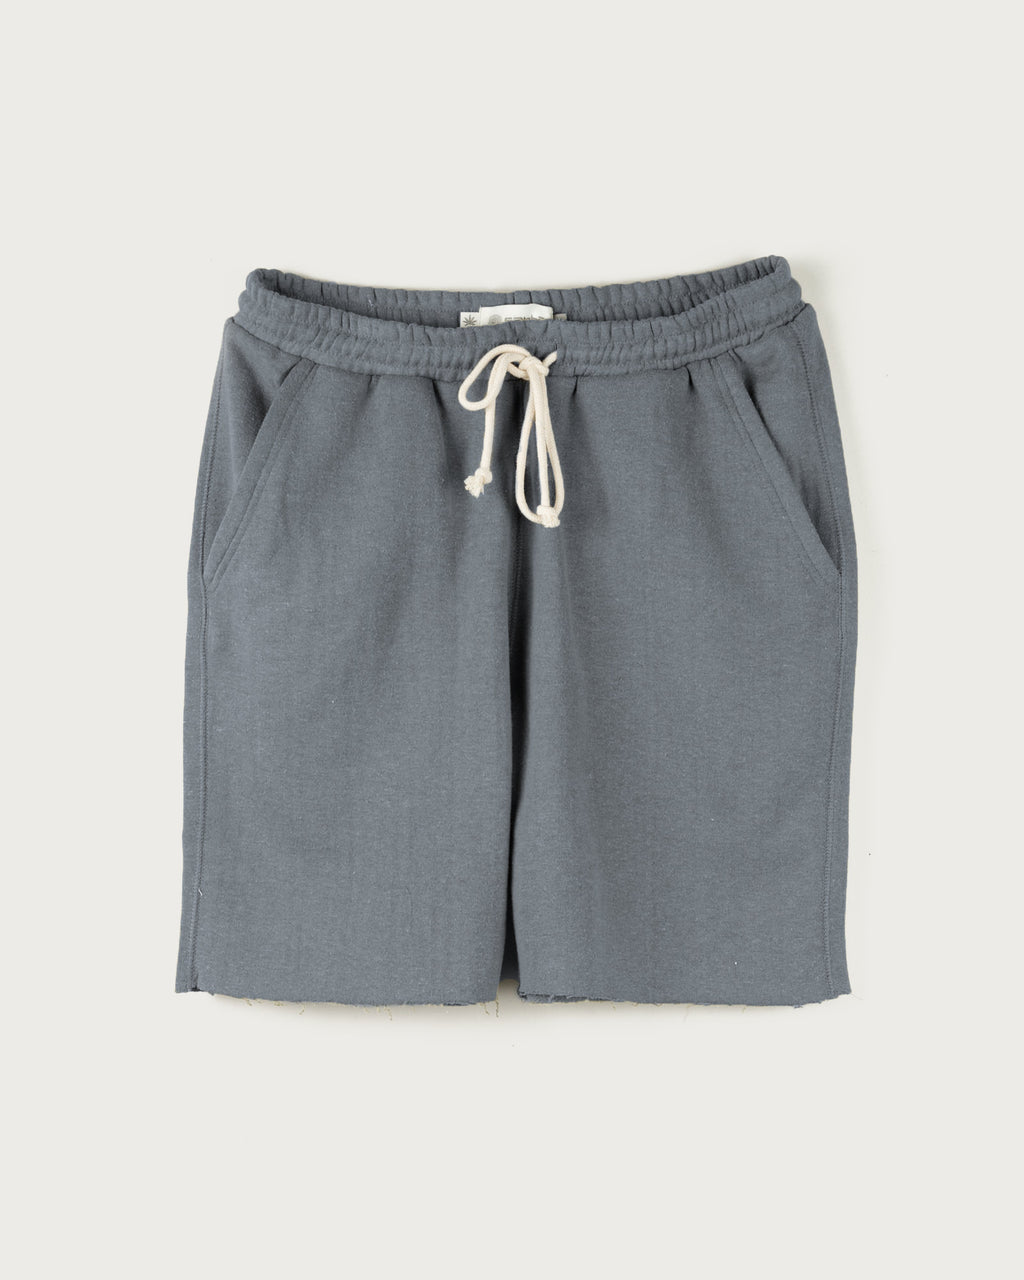 Satta Raw Hemp Shorts - Slate | SATTA